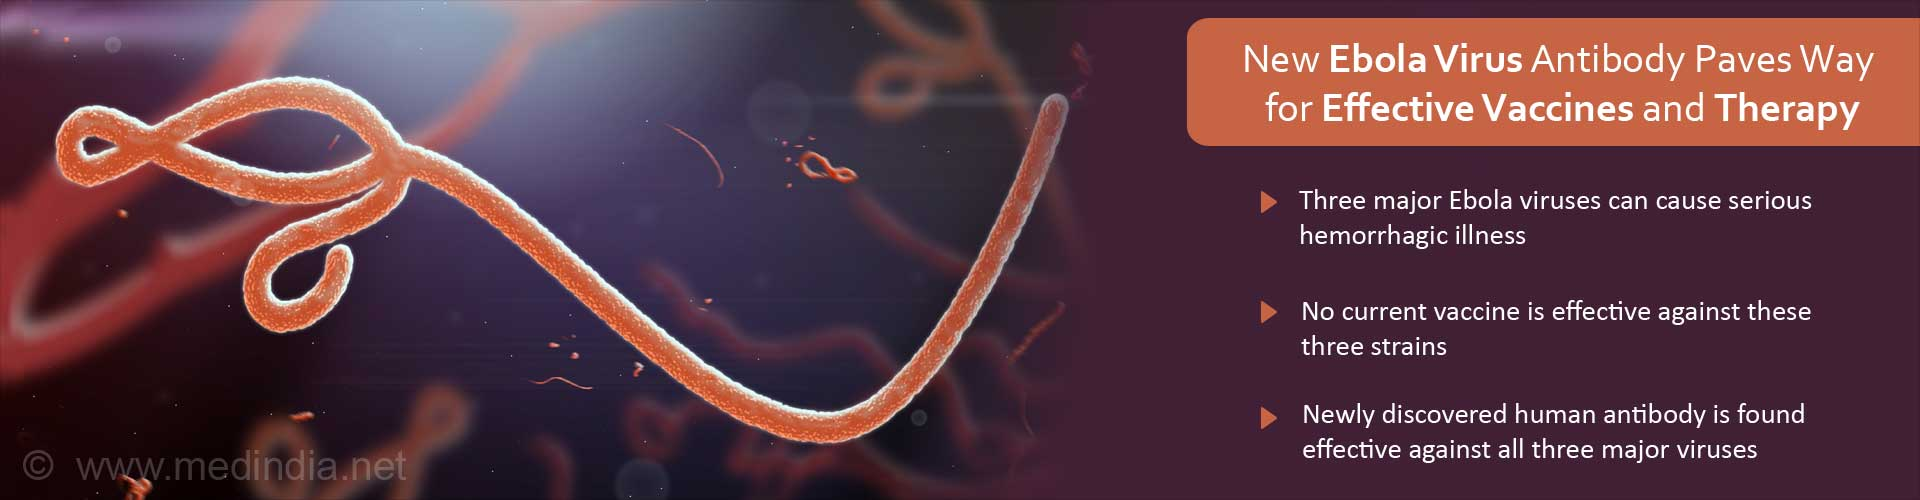 New Ebola Virus Antibody Paves the Way for Future Vaccines and Therapy